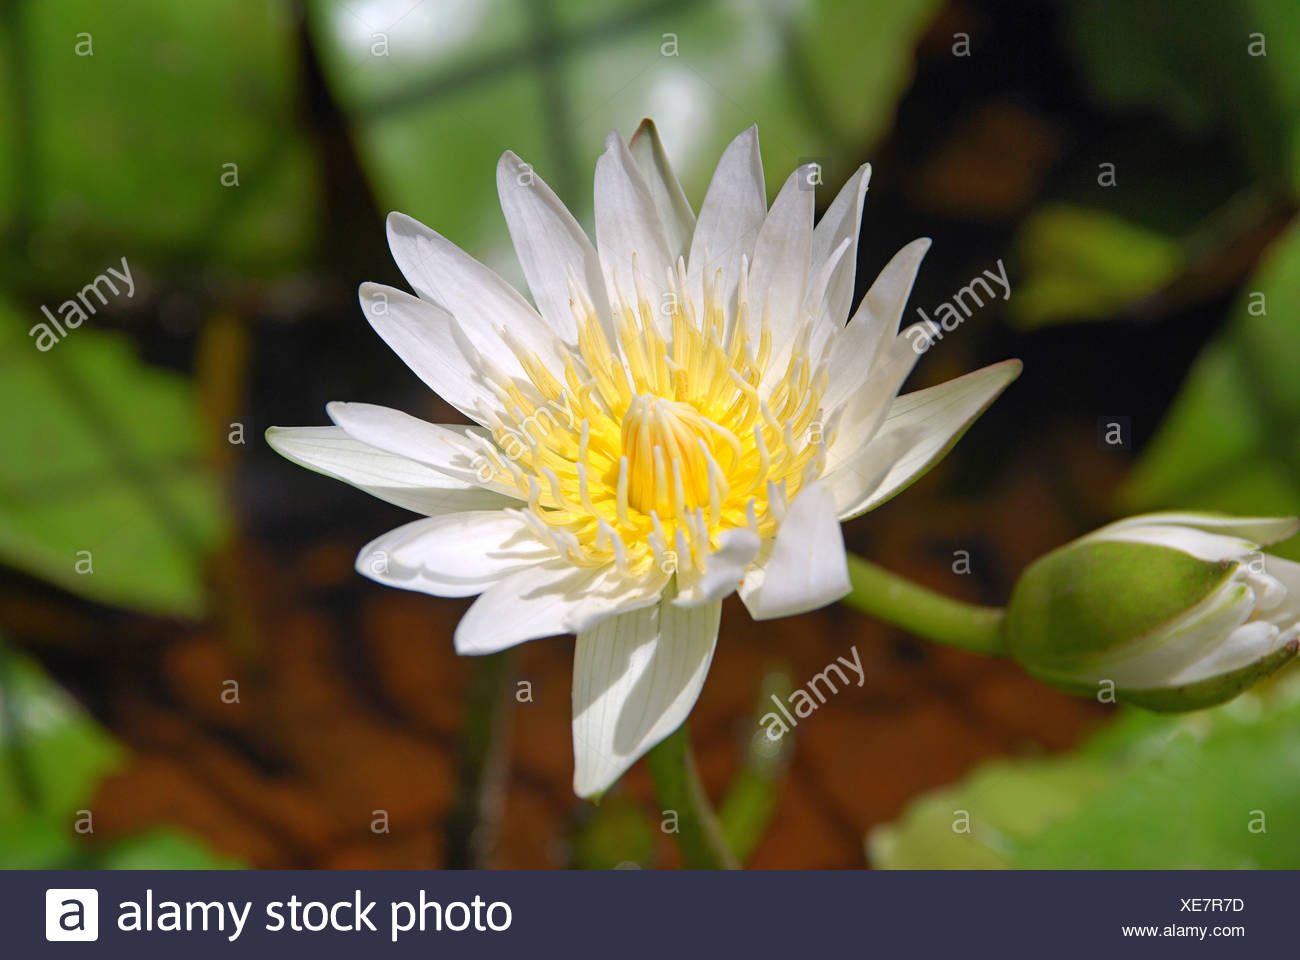 White lotus or nymphaea lotus lotus flower is the national flower white lotus or nymphaea lotus lotus flower is the national flower of india izmirmasajfo